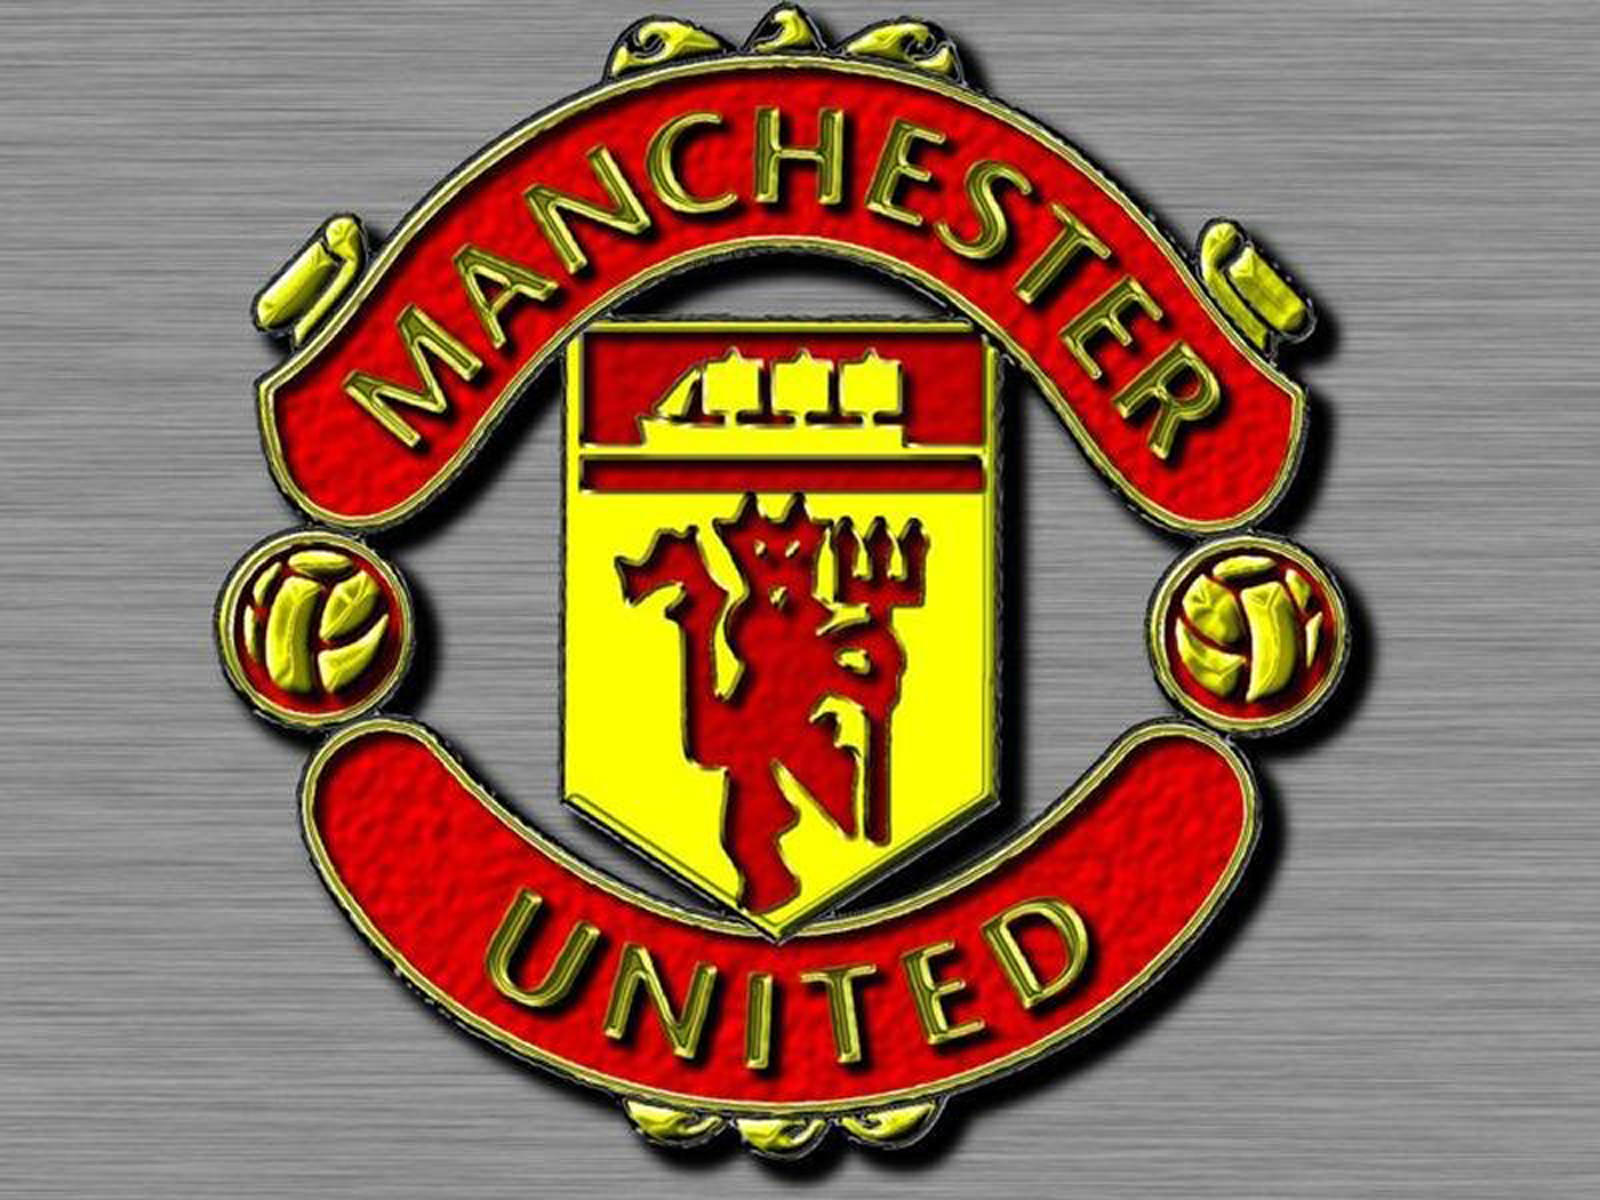 Manchester united fc cake ideas and designs